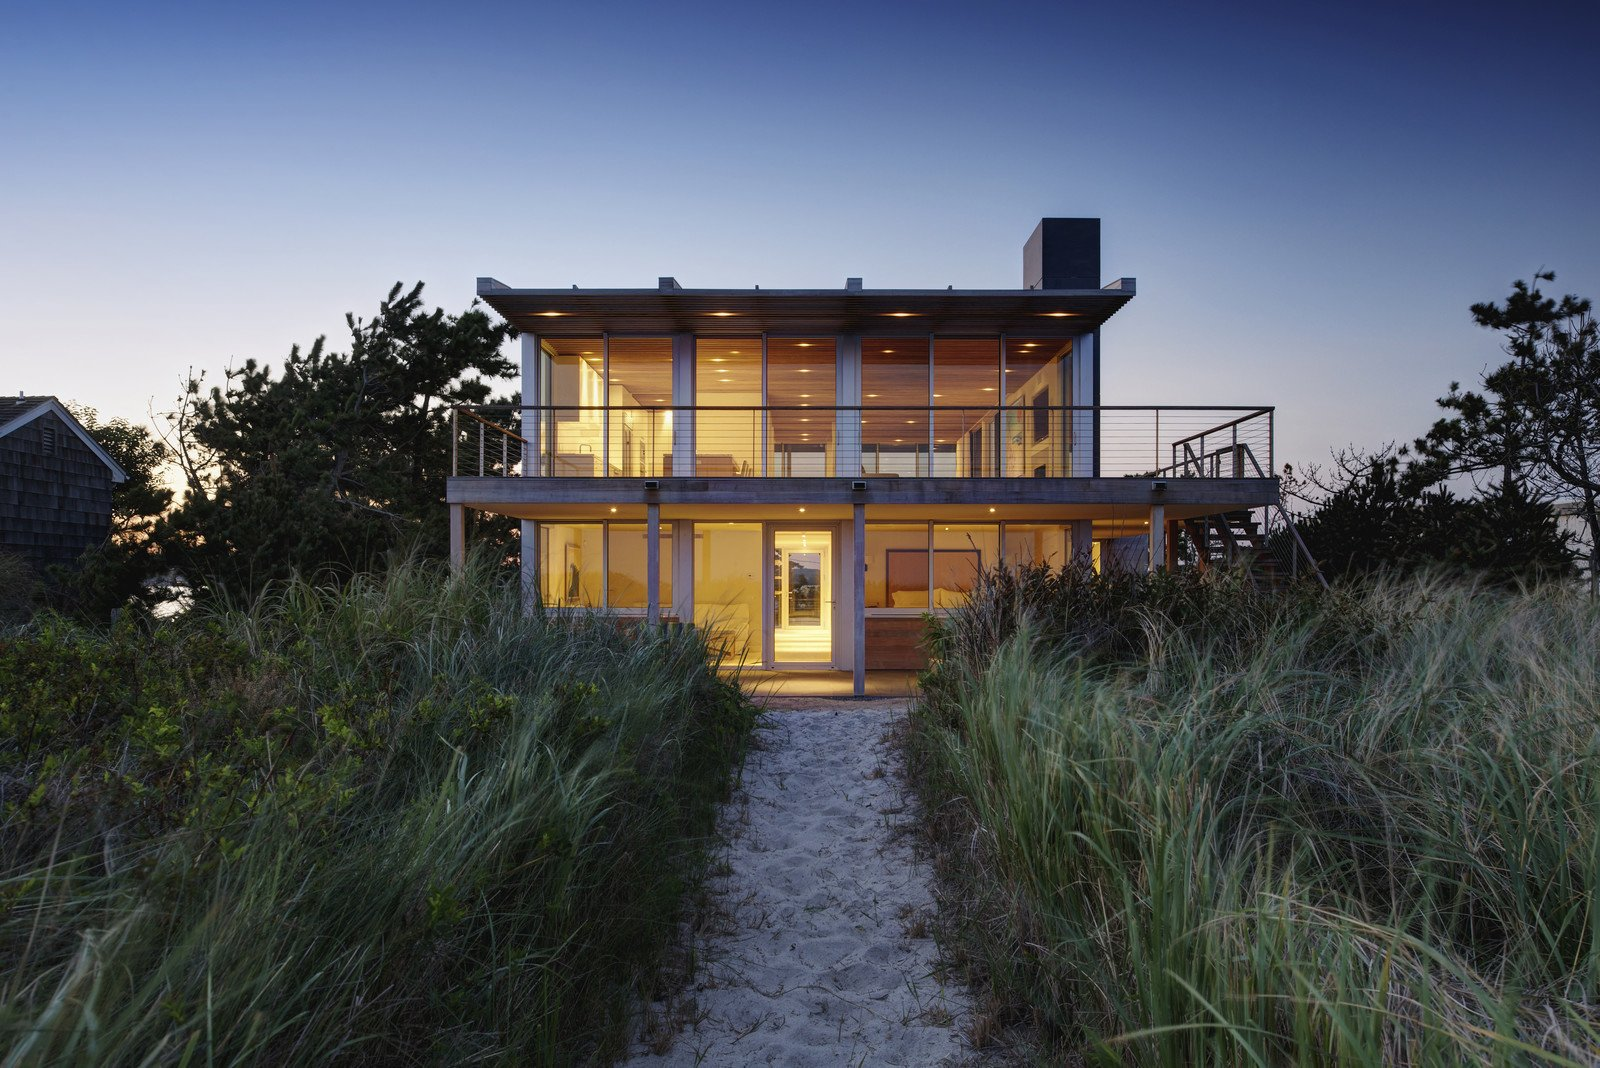 Perched atop the crest of the dune between the ocean and bay, this home in the Hamptons utilizes elegant materials which were chosen for their simplicity, sustainability, low maintenance and ability to coexist with the sea, sand and vegetation of the site. The use of glass also provides the residents with stunning views of their surroundings.   <span style=